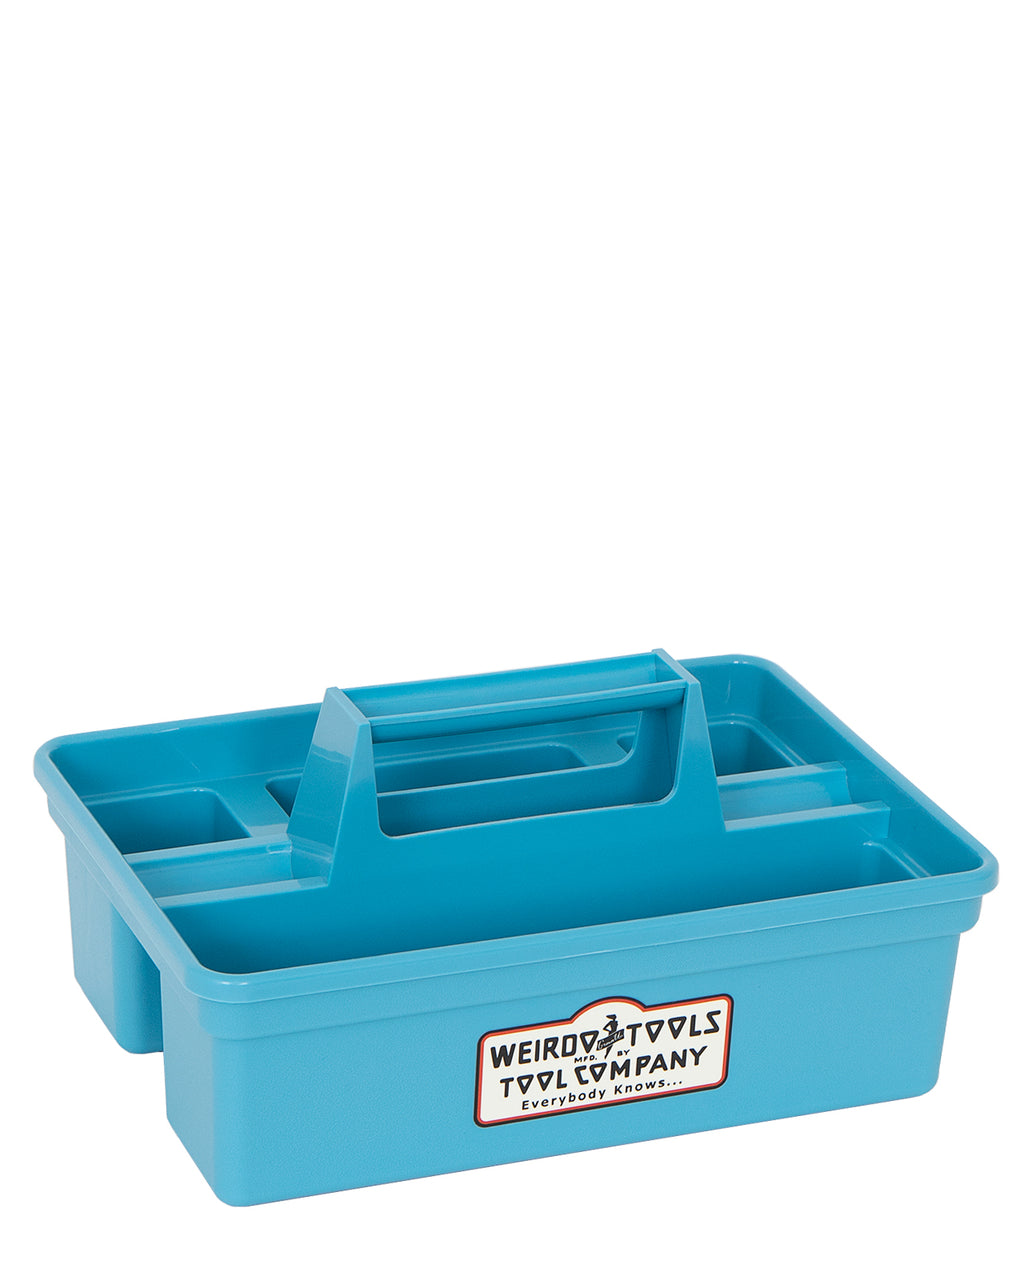 Weirdo Tool Company, Container, Blue